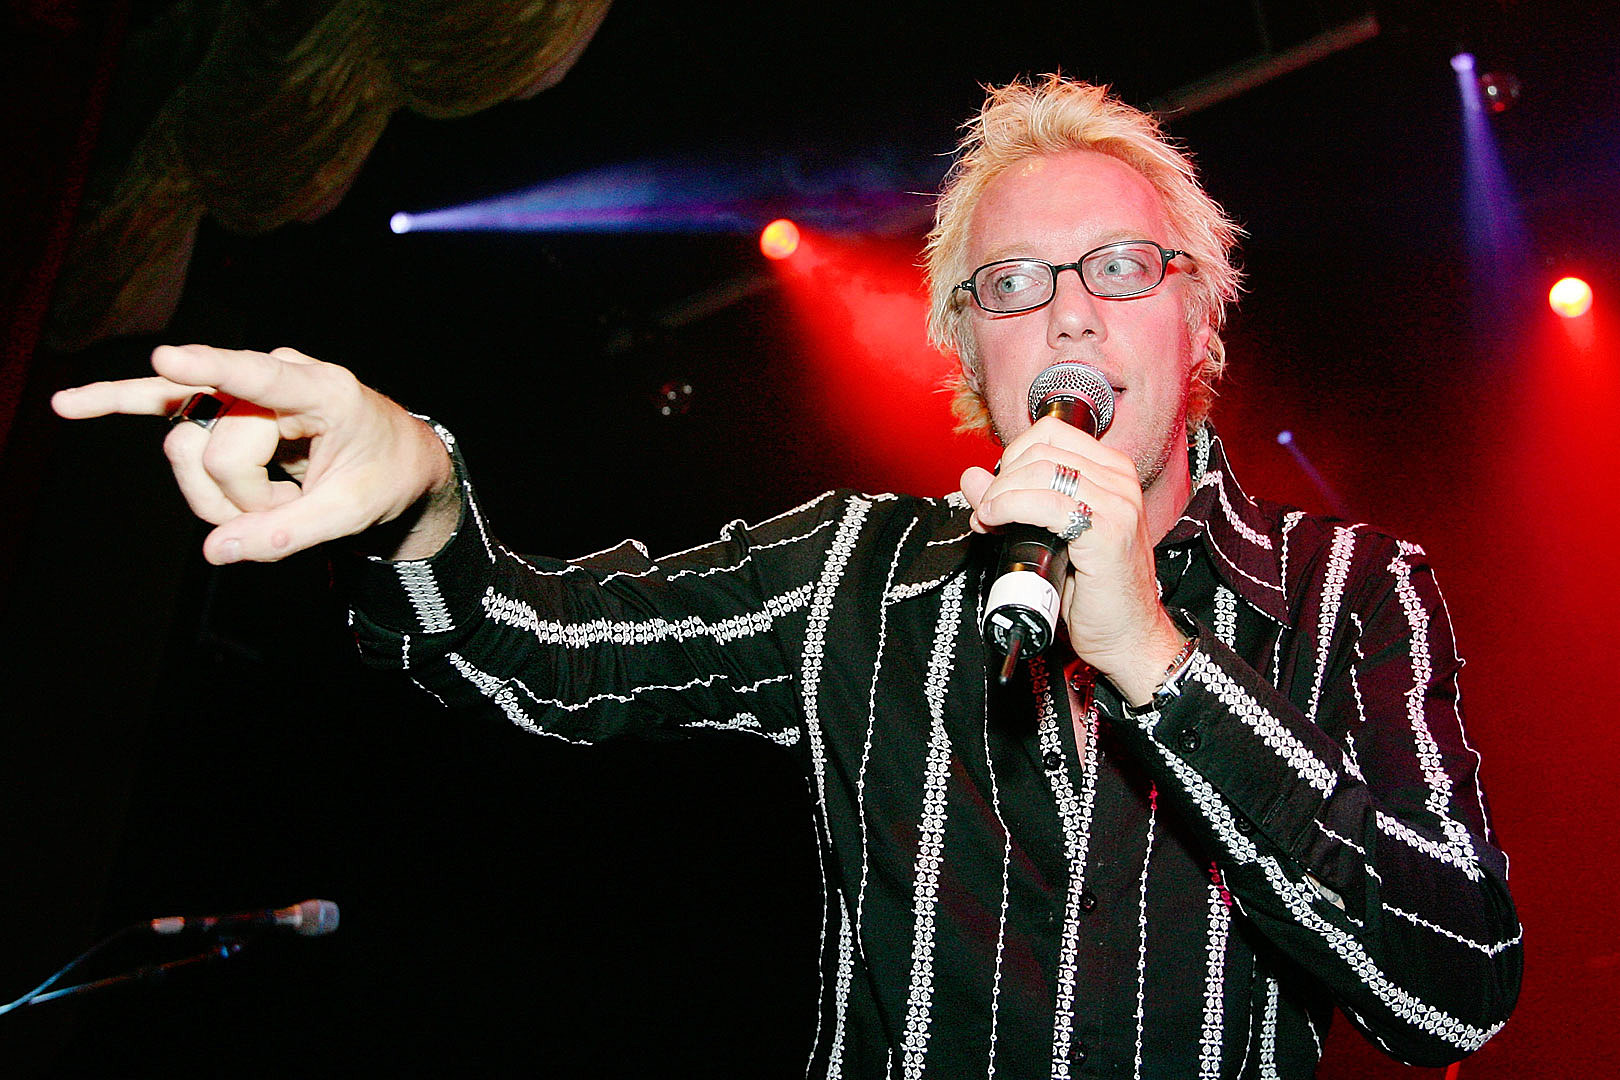 Daughter of Jani Lane Slams Former Manager Suing Warrant Singer's Estate | The Rock of Rochester